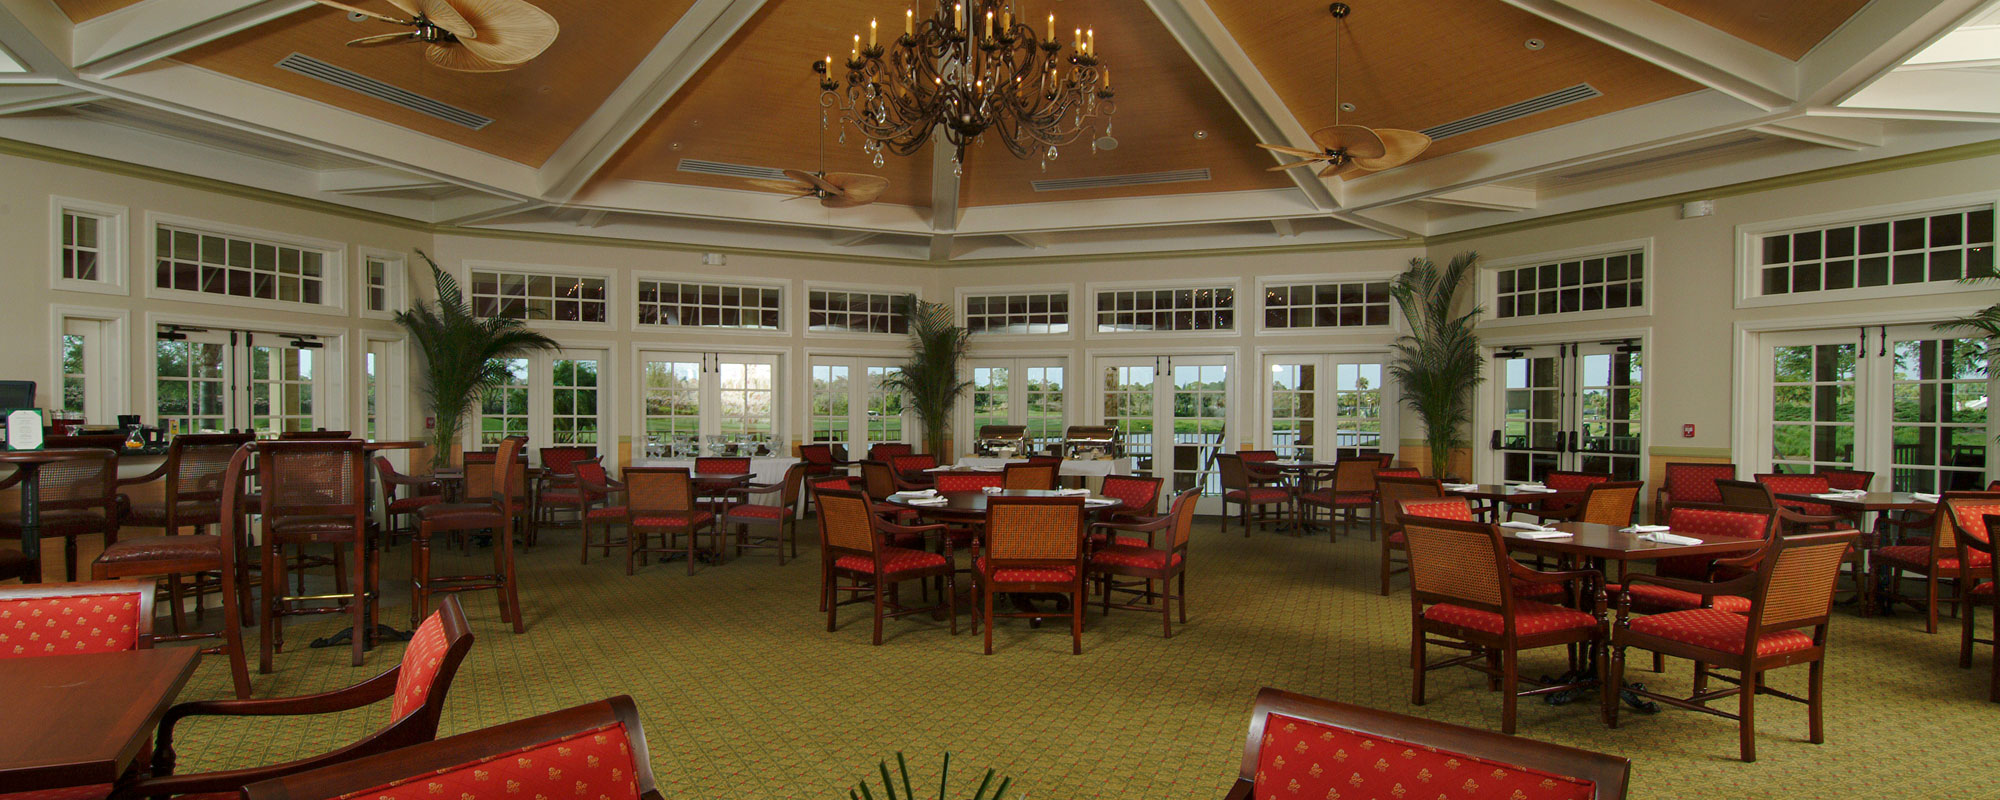 Laplaya Country Club Dining Room – Naples